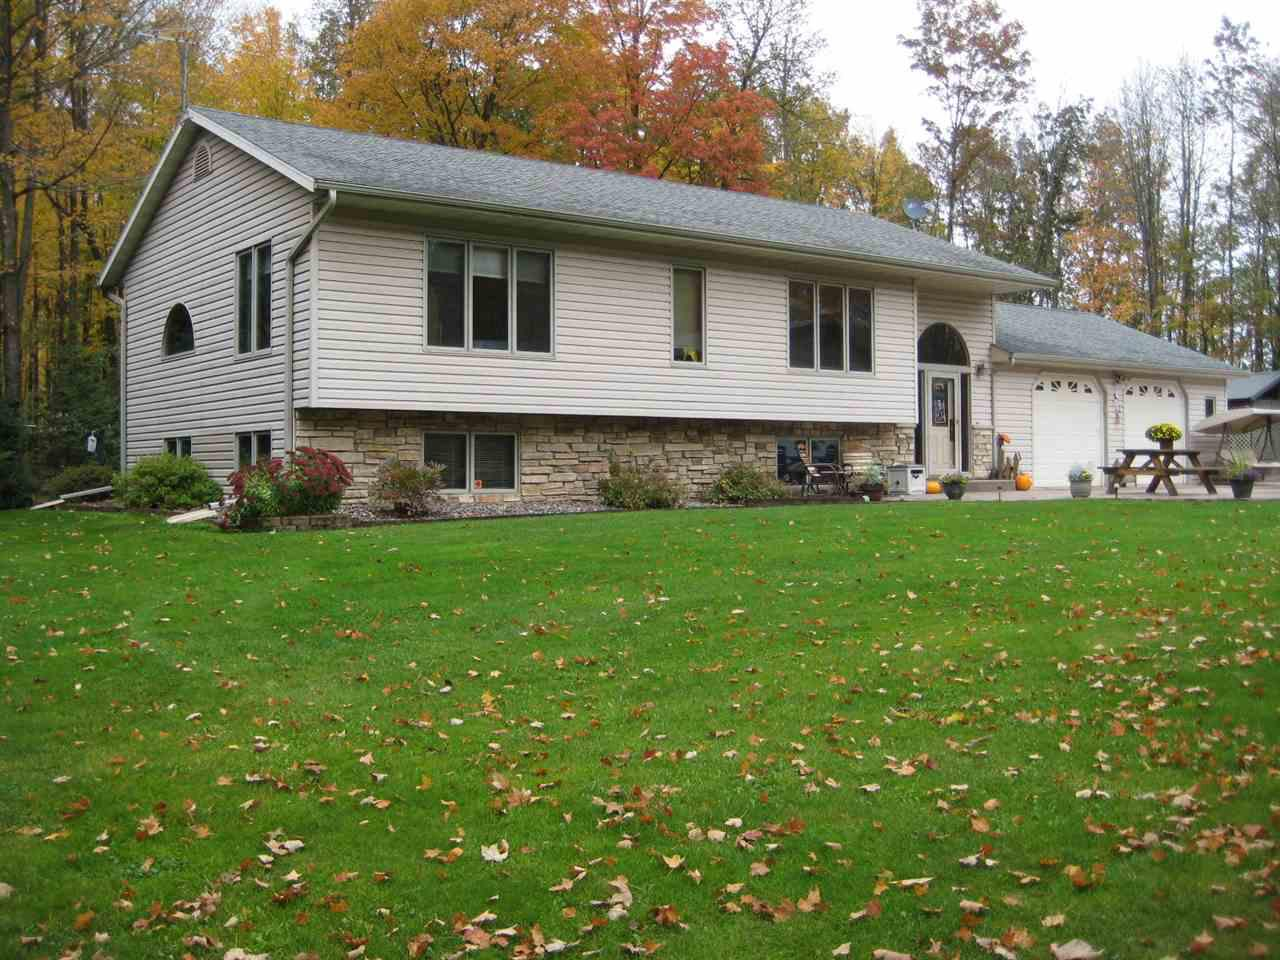 Immaculate 4+ bed, 2 bath country home on +/- 14.92 wooded acres. Beautiful kitchen with new appliances, breakfast bar and pantry. Large master suite with private master bath and walk-in closet. Newer addition features a family room with vaulted hickory ceilings and covered deck with scenic views. Finished lower level. Attached insulated and heated 2+ car garage, 32x24 shed with lean-to. 20x12 and 15x11 additional storage sheds. Conveniently located 4 miles from town on a blacktop road. The land features a trail system and is nicely wooded. The stove, refrigerator, microwave, dishwasher, washer, dryer, window treatments and LP tank are included in the sale price.